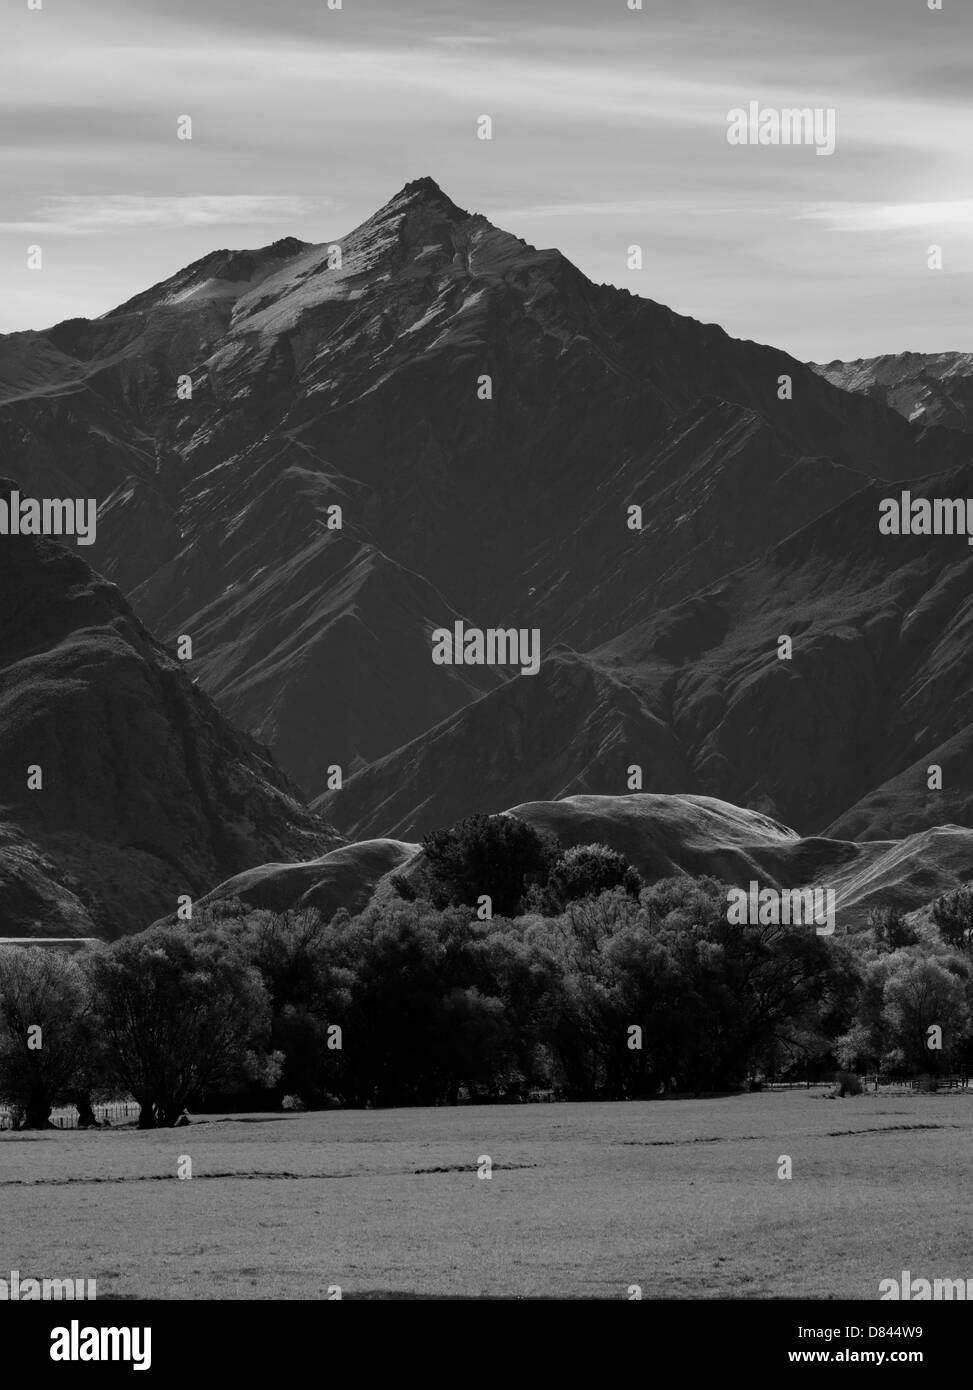 Looking north, a valley view of The Branches with Mount Greenland in the background, near Queenstown, Otago, New - Stock Image